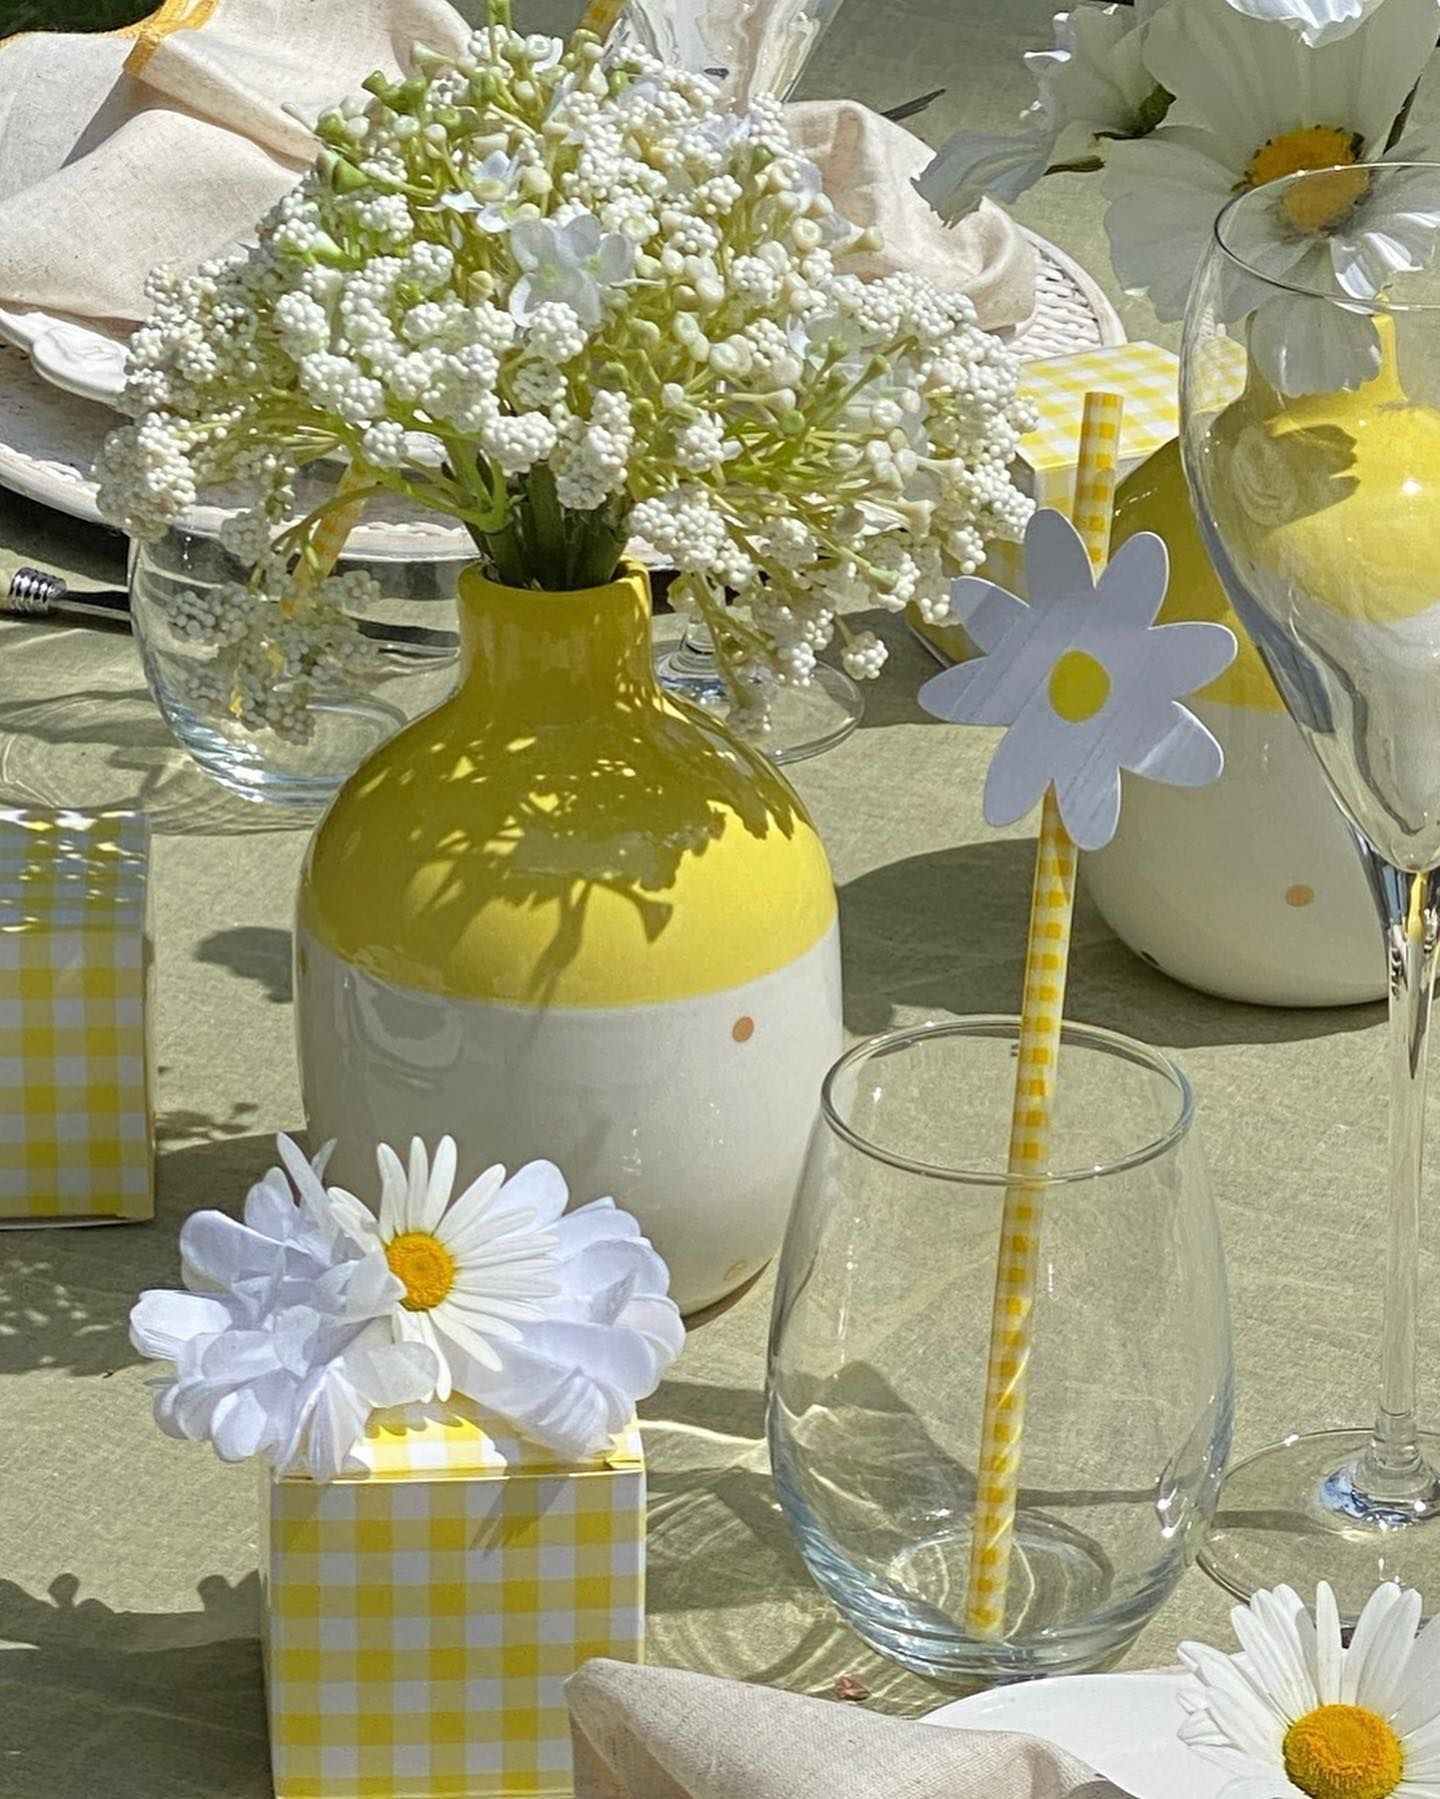 Daisies… sweet… innocent …fresh.! I think the daisies are so full of summer and sunshine. Sunny, summery, girly, happy and lovely! A little table was set to enjoy the weather, the food, the view and the special company. I thought you might enjoy this table too!  Happy Monday! Wish you a wonderful week! ——————————————————-SWIPE LEFT to see more PICTURES and GO to my STORIES to see more DETAILS ——————————————————- #tabledecoration #tabledecor #tabledecorations #tablesettingideas #tableset #tablese